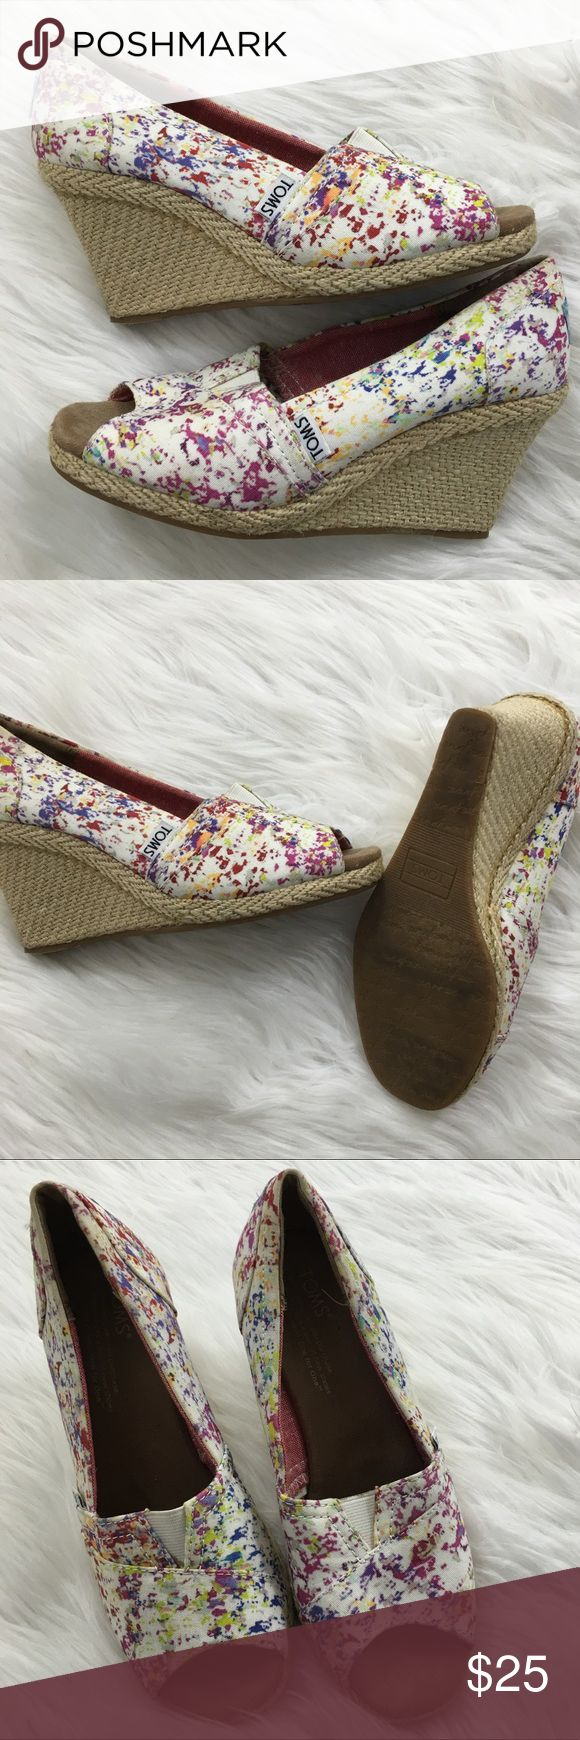 Toms Wedges Super cute and gently worn toms wedges. The colorful fabric makes it perfect to wear with many different things! TOMS Shoes Wedges